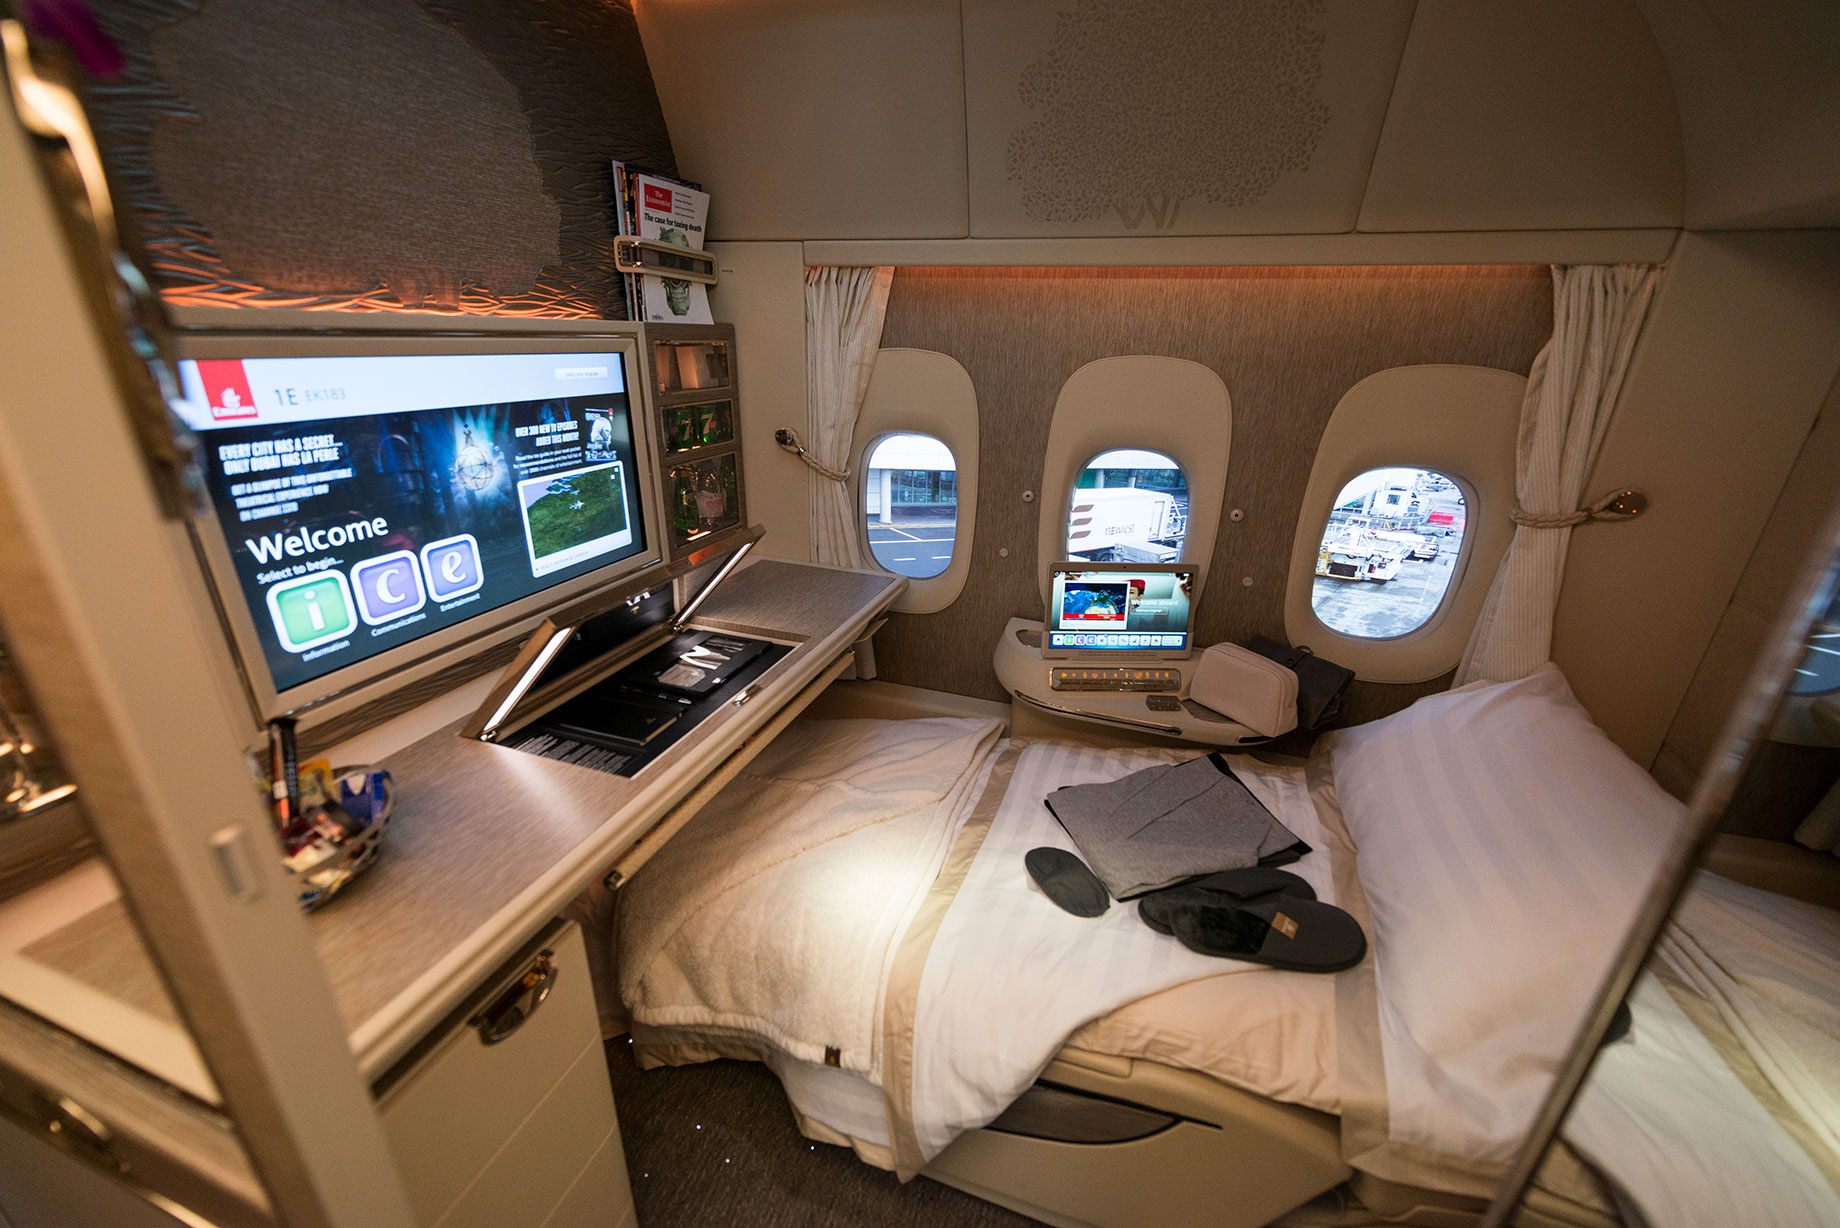 Emirates First Class bed in the sky on a Boeing 777